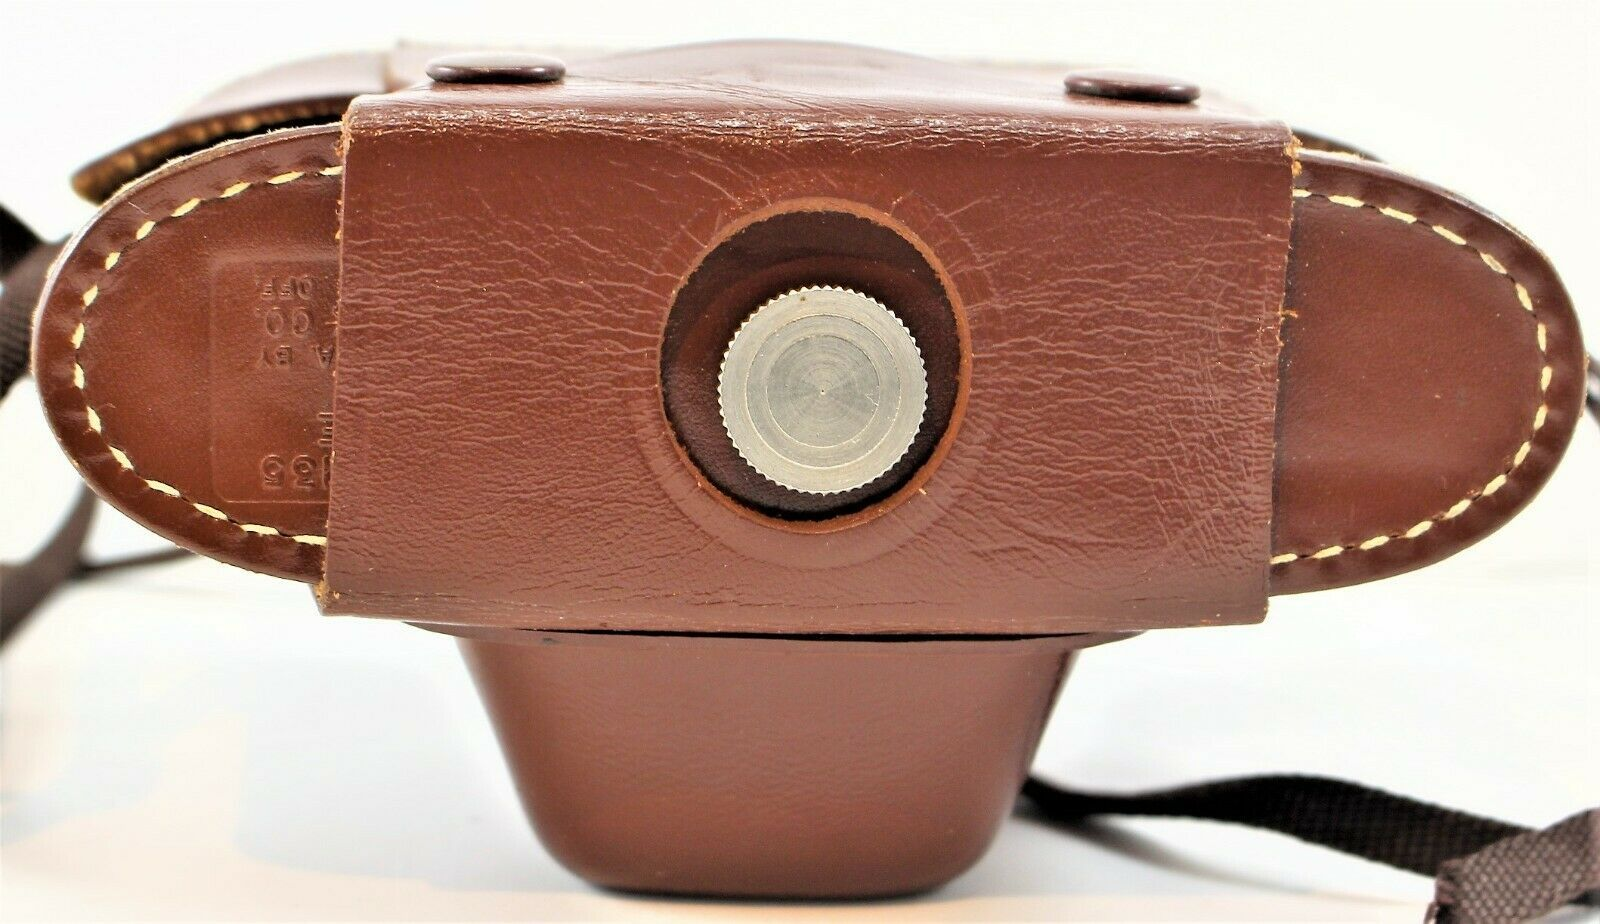 Kodak Pony 135 Camera With Kodak Leather Field Case Untested Free Shipping image 11